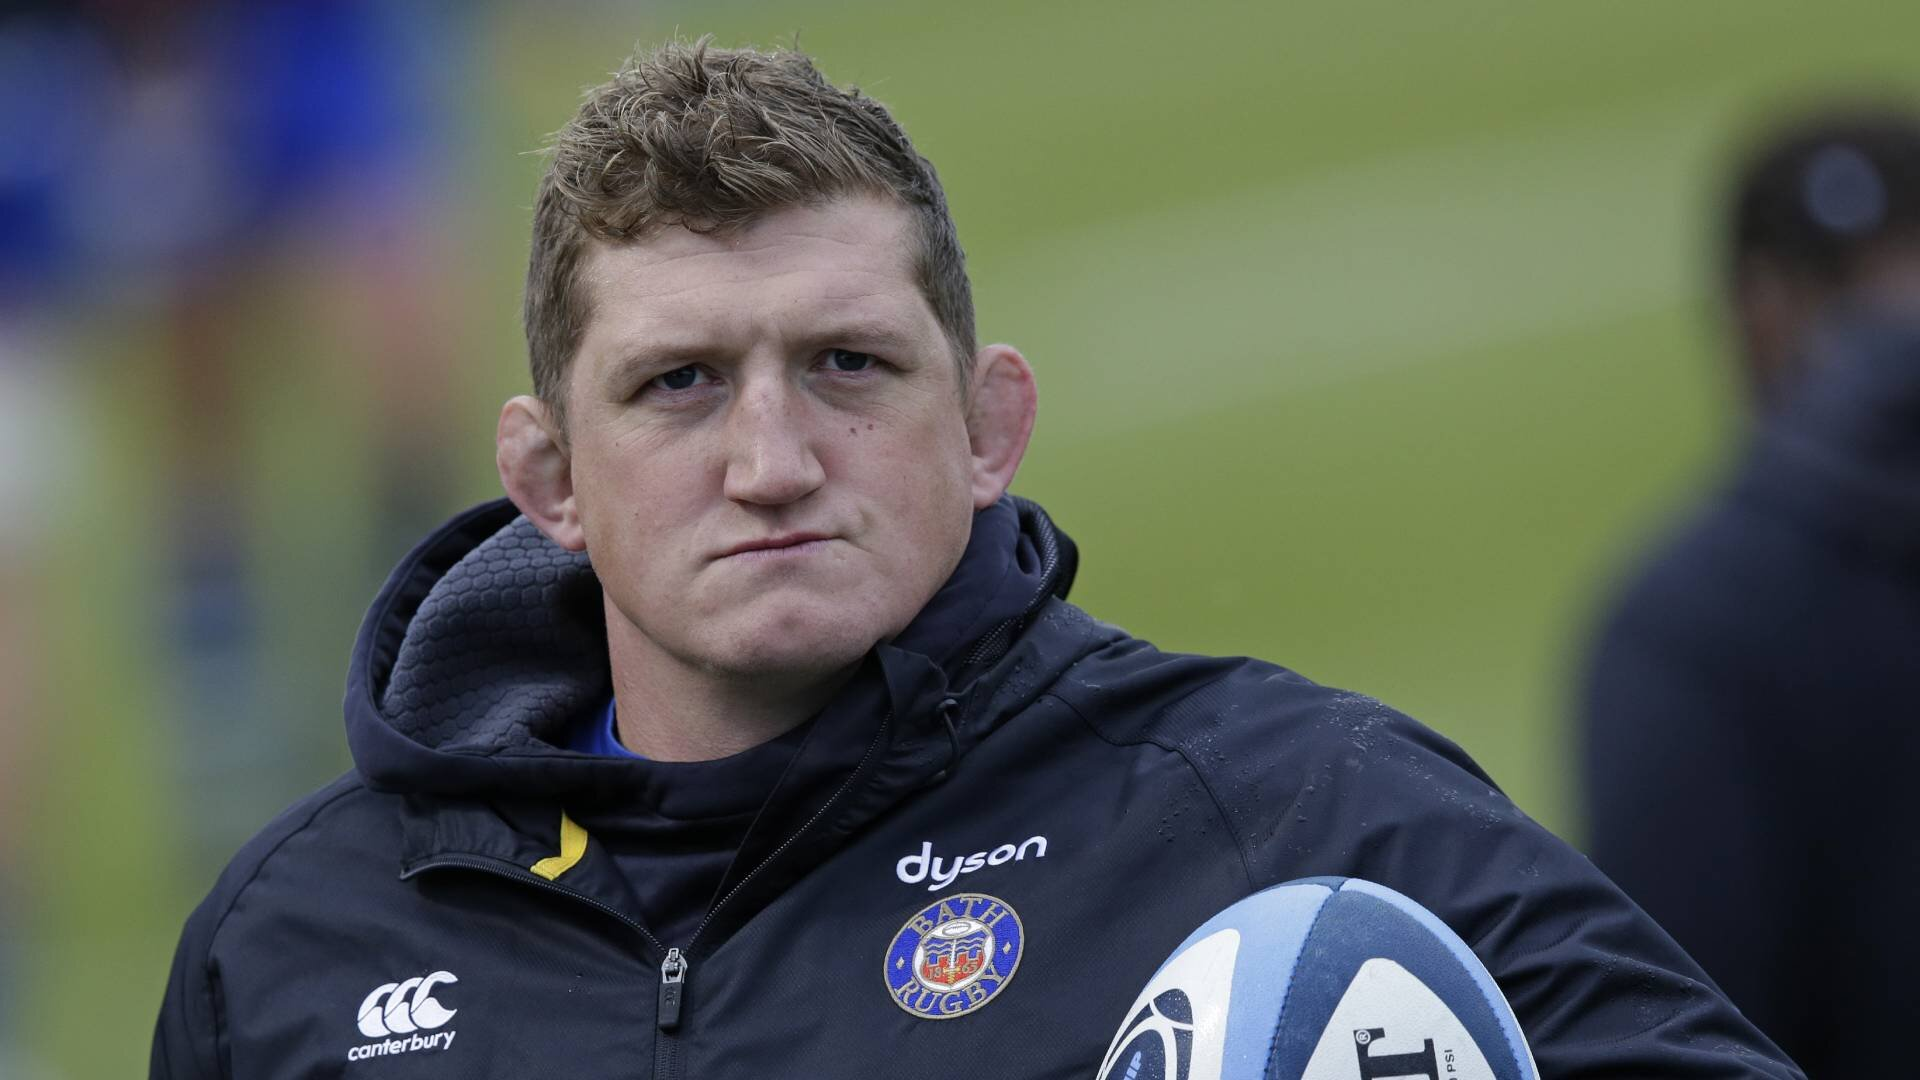 'A very strange situation': Bath set to prepare for semi-final they may not play